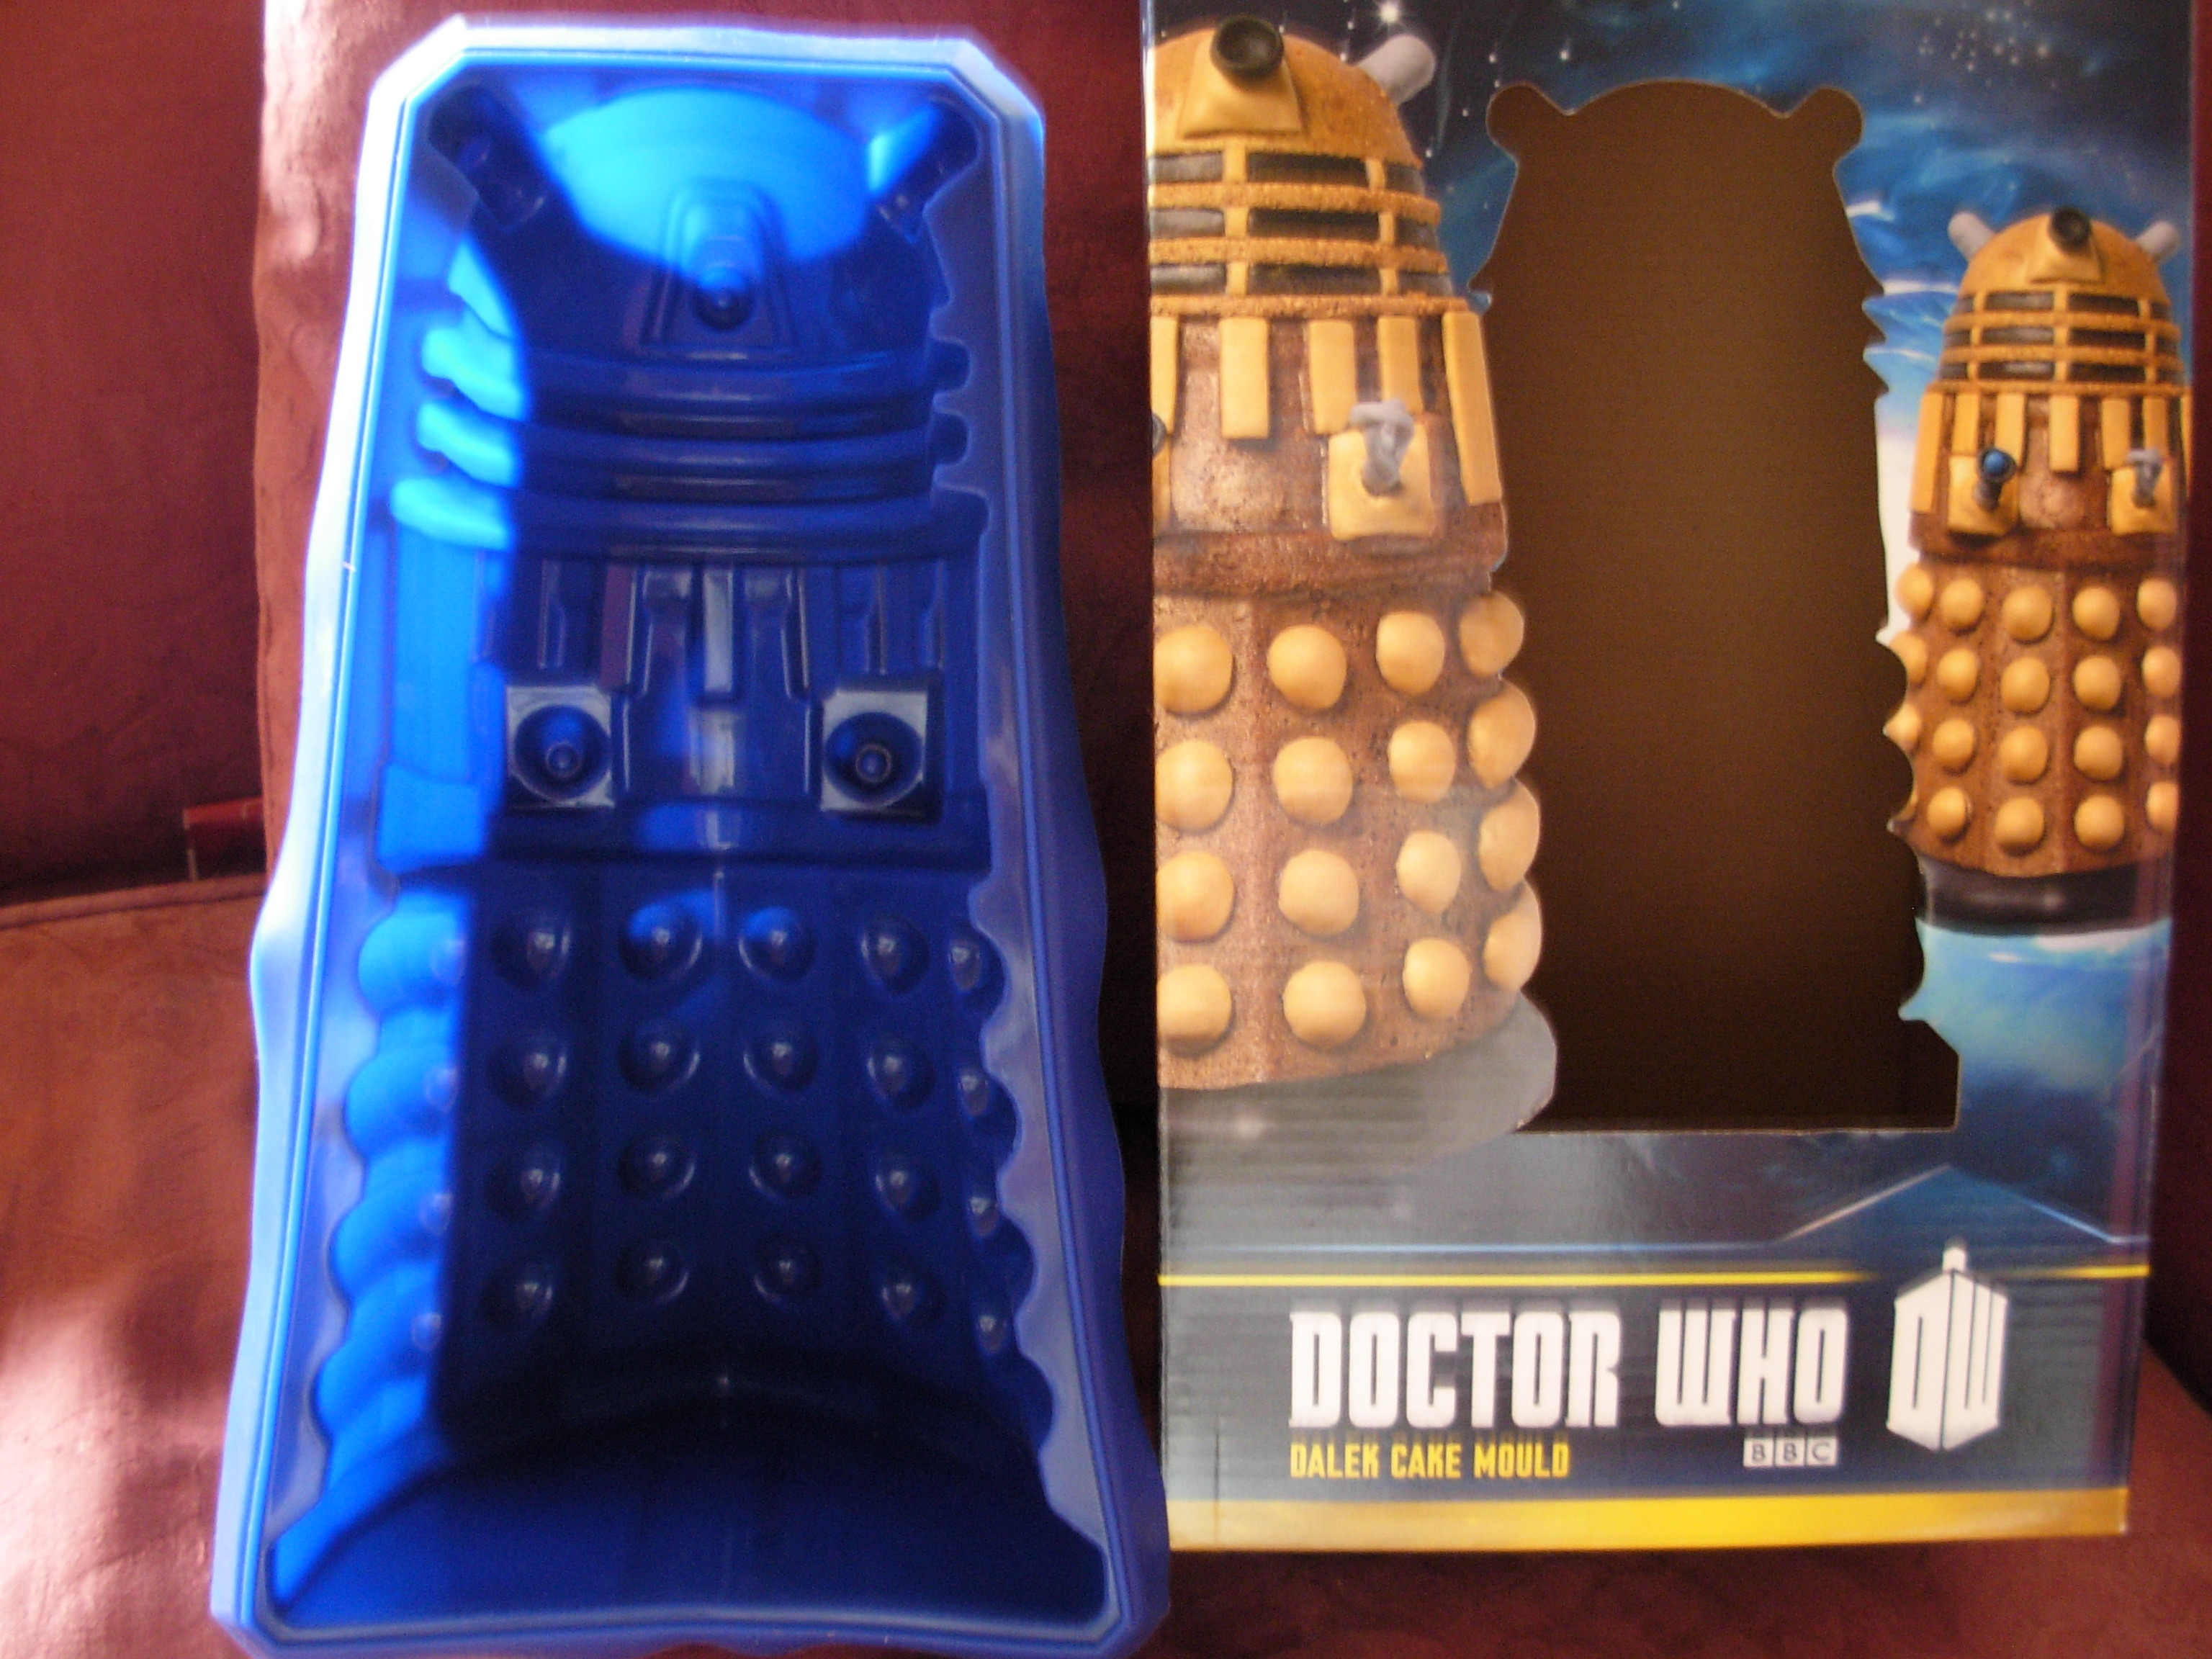 How To Make A Dr Who Dalek Cake